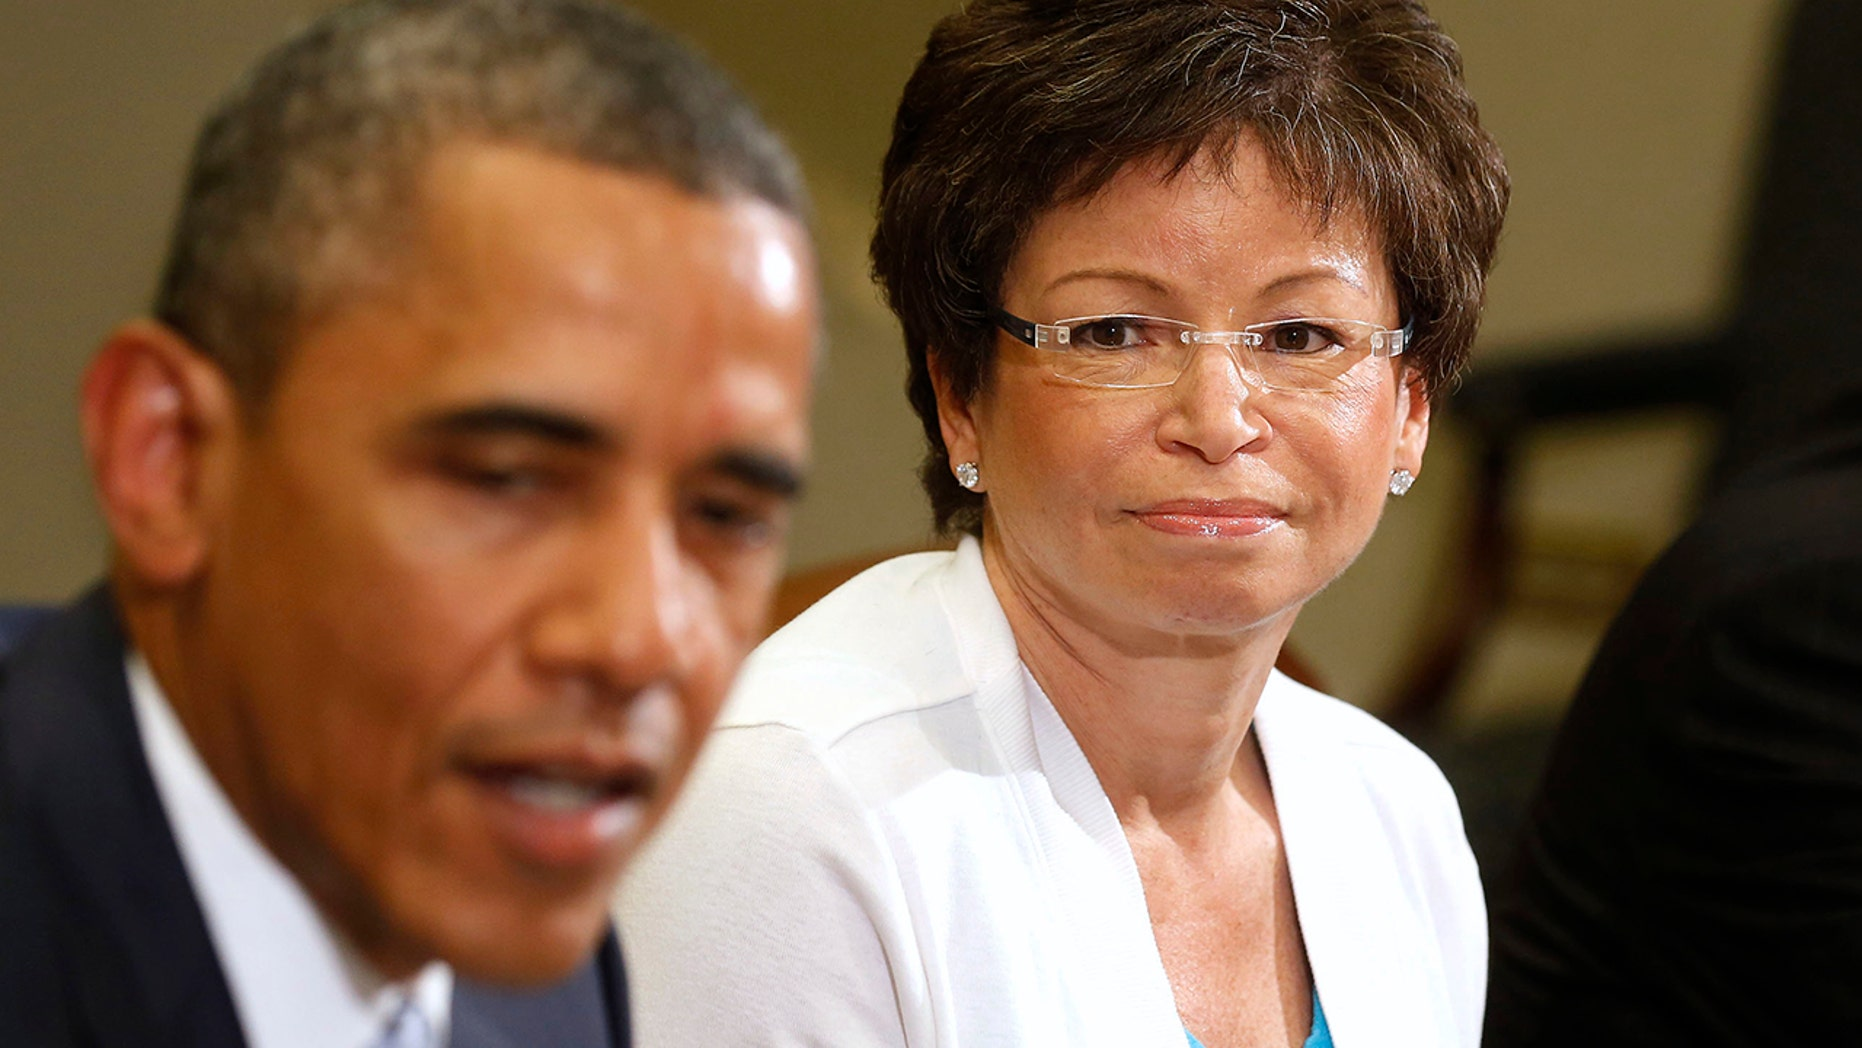 """Former top Obama adviser Valerie Jarrett insisted on Thursday that her former boss would have been impeached """"in a nanosecond"""" if he had conducted himself the way <a data-cke-saved-href=""""https://www.foxnews.com/category/person/donald-trump"""" href=""""https://www.foxnews.com/category/person/donald-trump"""">President Trump</a> has in office."""